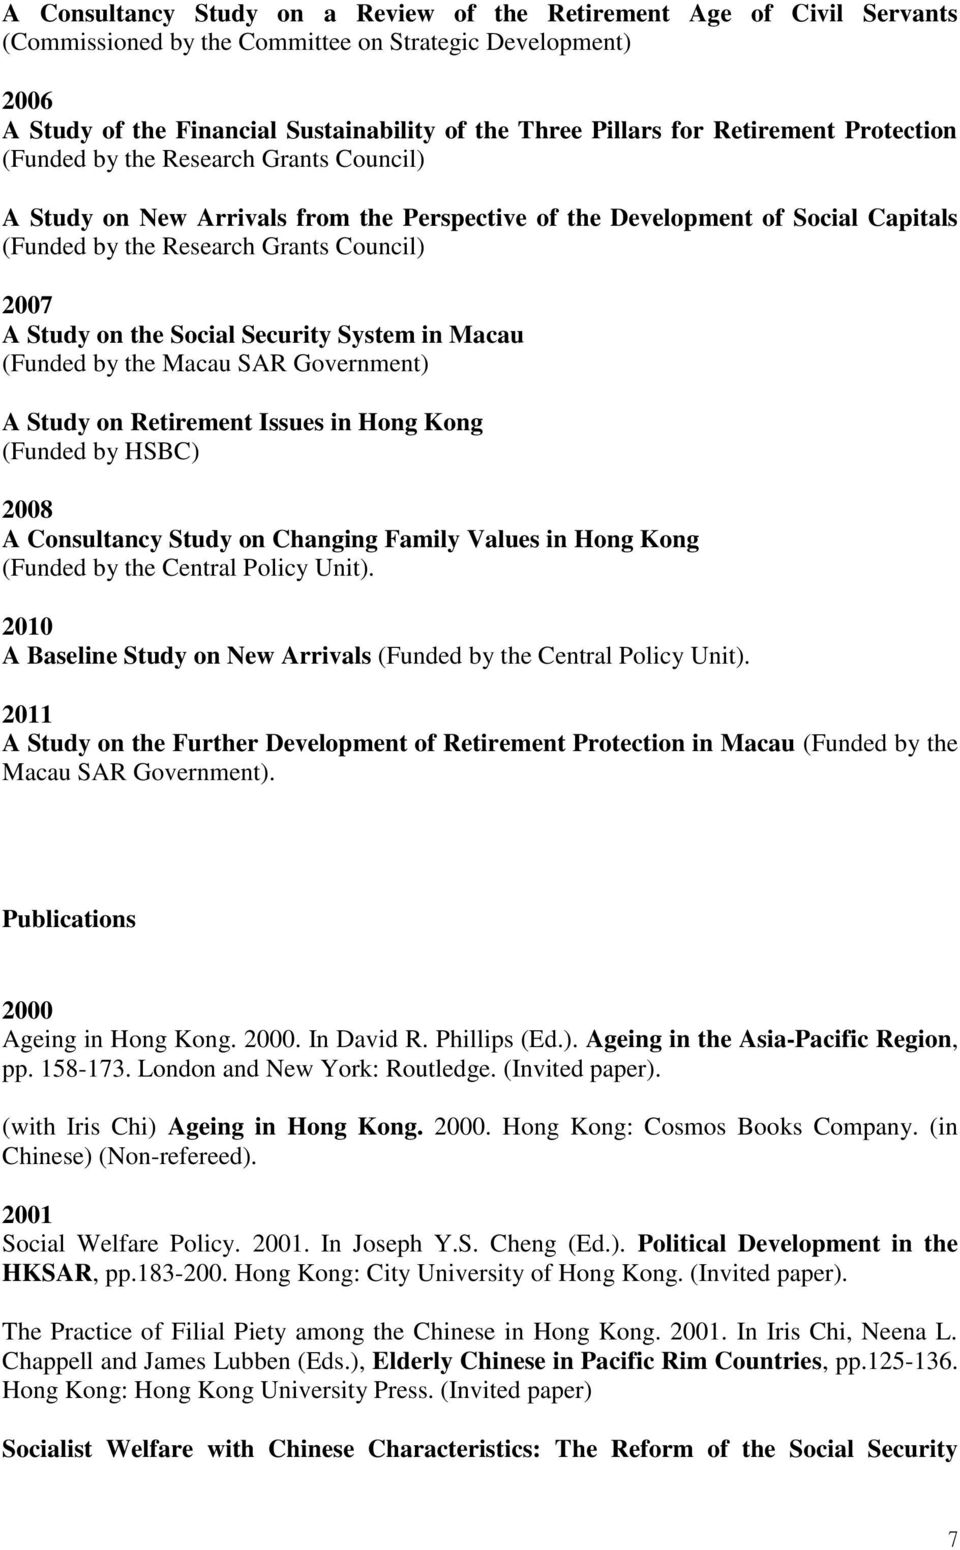 on the Social Security System in Macau (Funded by the Macau SAR Government) A Study on Retirement Issues in Hong Kong (Funded by HSBC) 2008 A Consultancy Study on Changing Family Values in Hong Kong